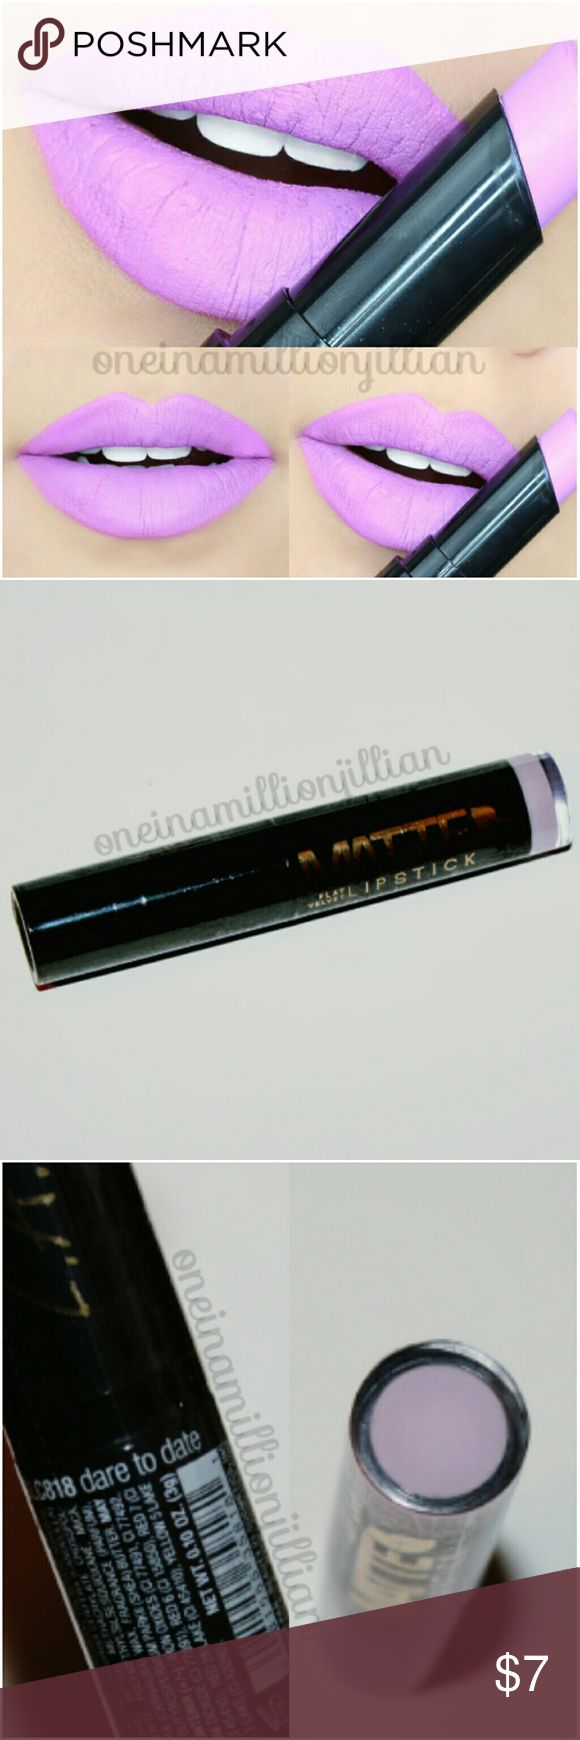 Matte Flat Velvet Lipstick - Dare to Date New/Sealed (Swatches from Google)  Full Sz & Authentic  Color: Dare to Date (light lavender)  LA Girl Matte Flat Velvet Lipsticks are rich in pigment with a flat, velvet finish.  ☆ Soft, smooth application ☆ Formula contains shea butter to hydrate lips  Check out my page for more great items & discounts. #oneinamillionjillian LA Girl Makeup Lipstick